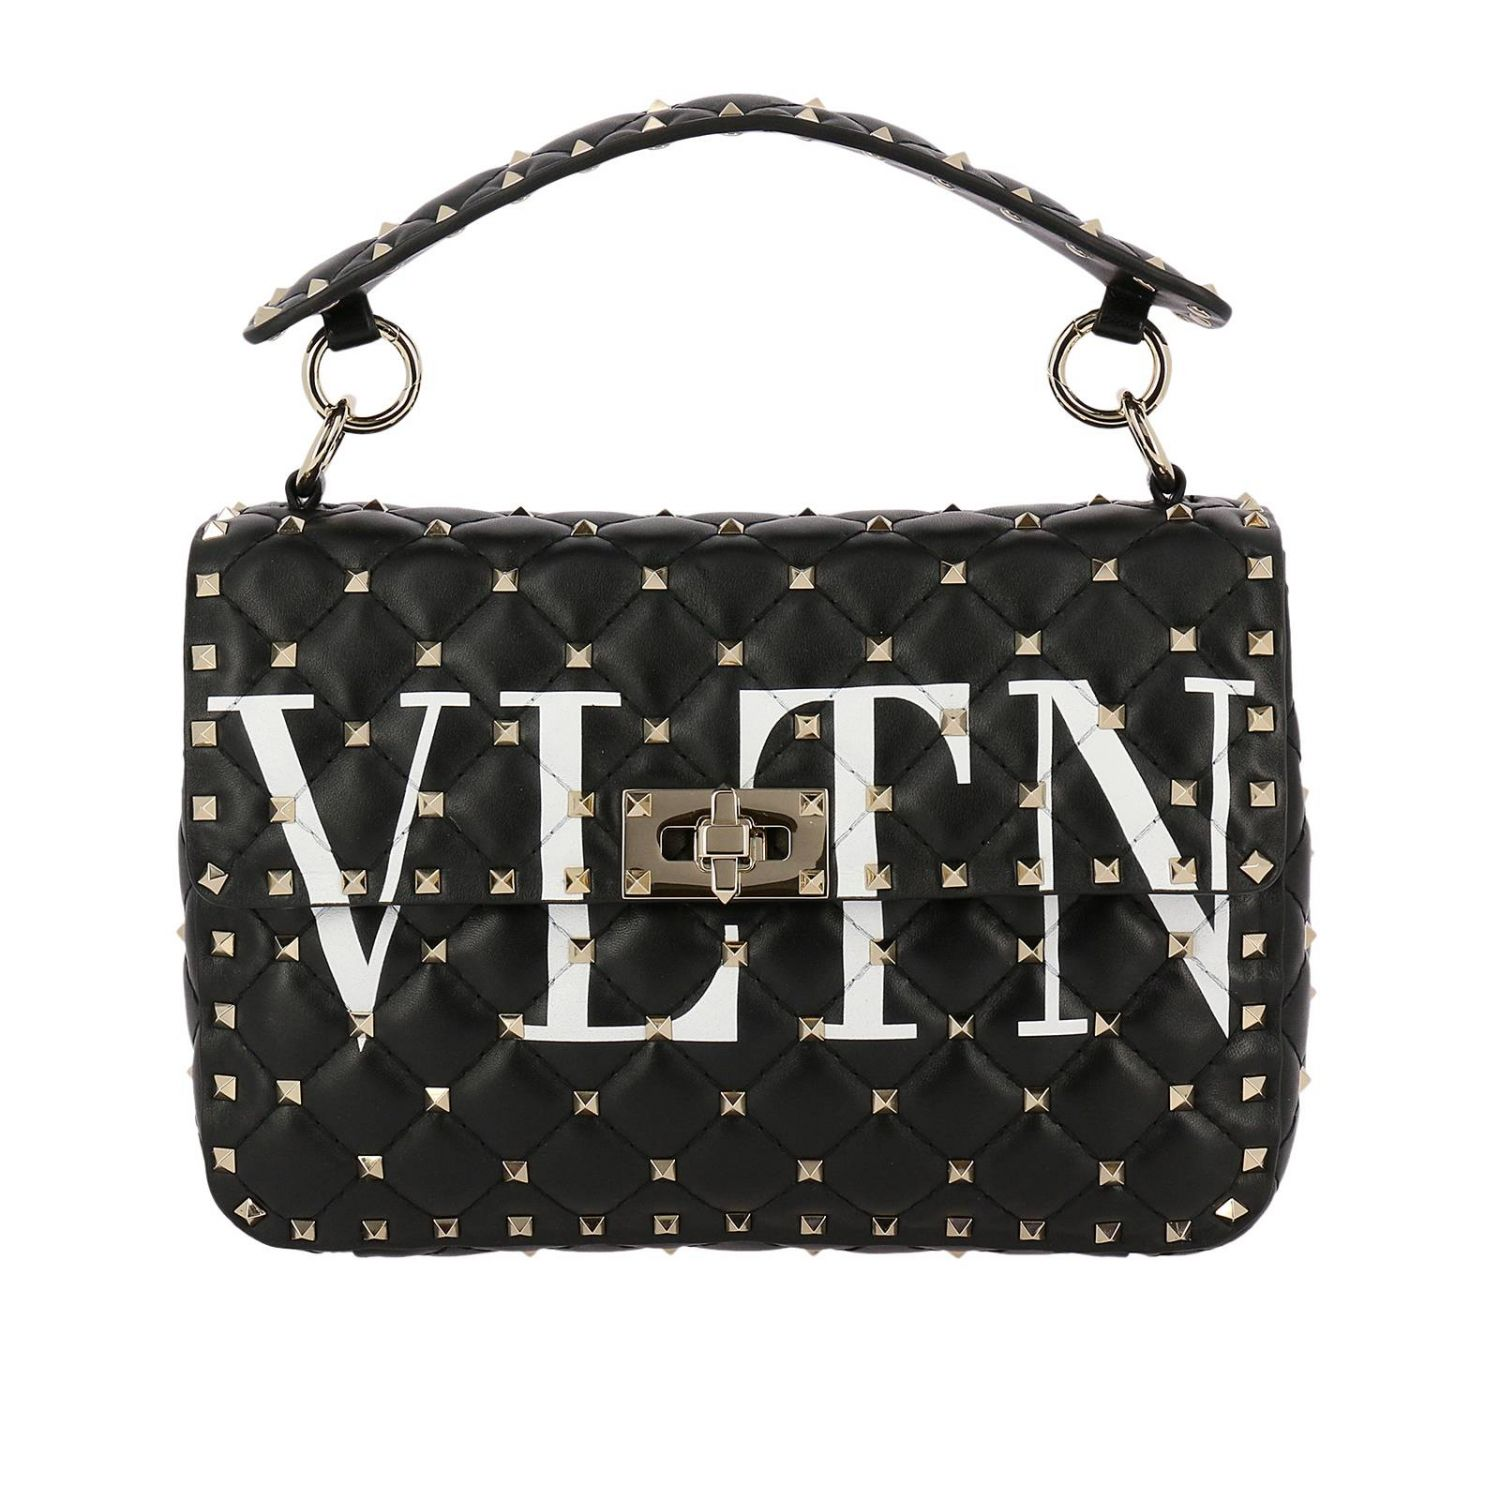 Handbag Valentino Rockstud Spike Bag In Genuine Leather With Micro Studs And Shoulder Strap 8287169